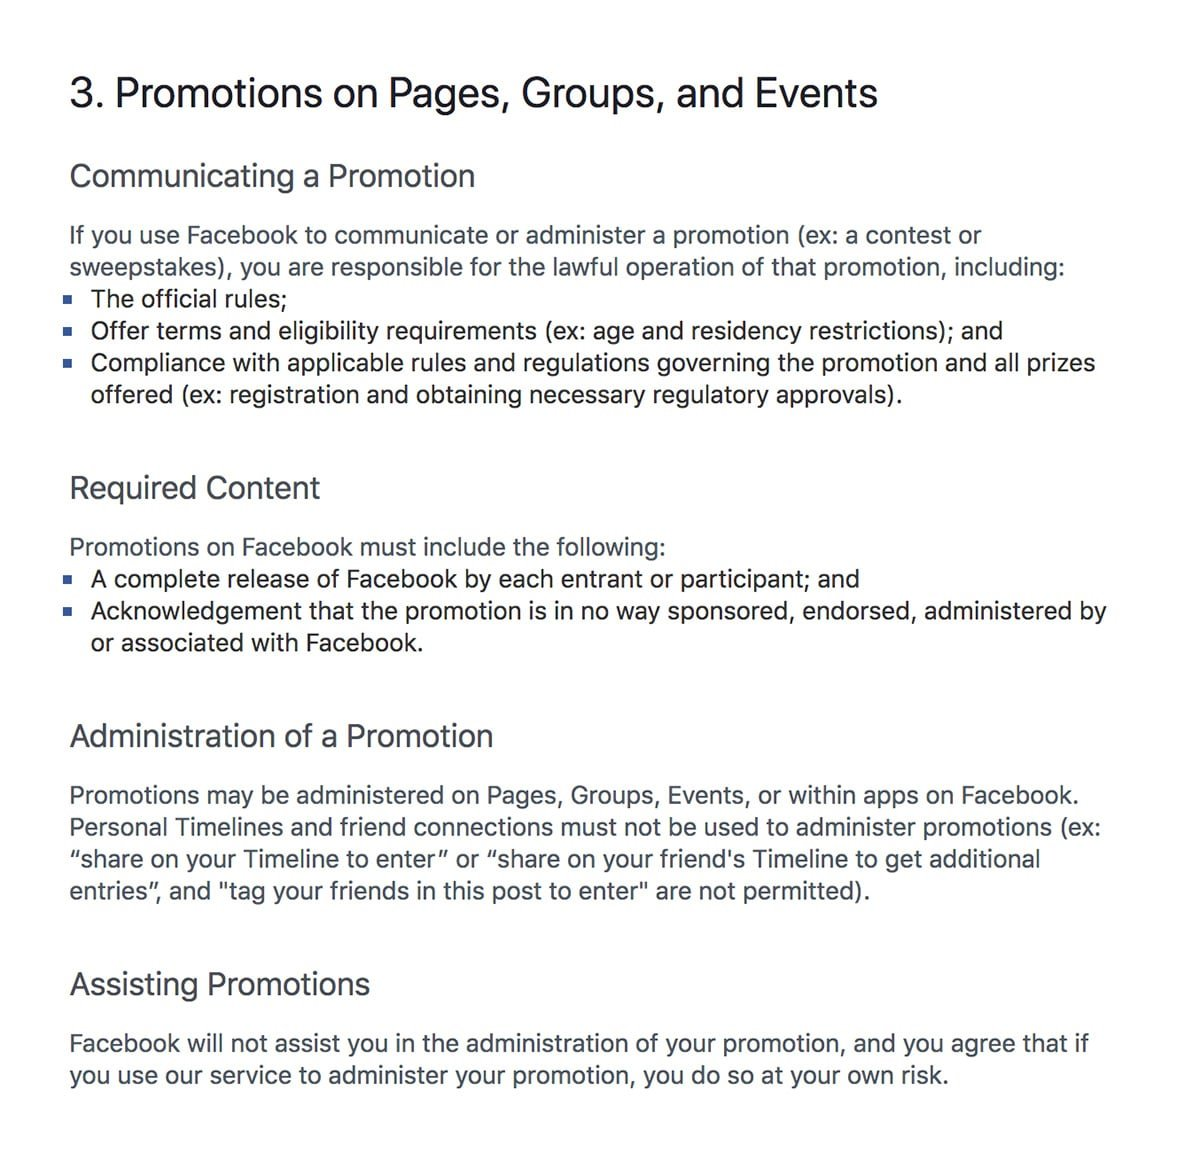 Facebook's Promotional Guidelines